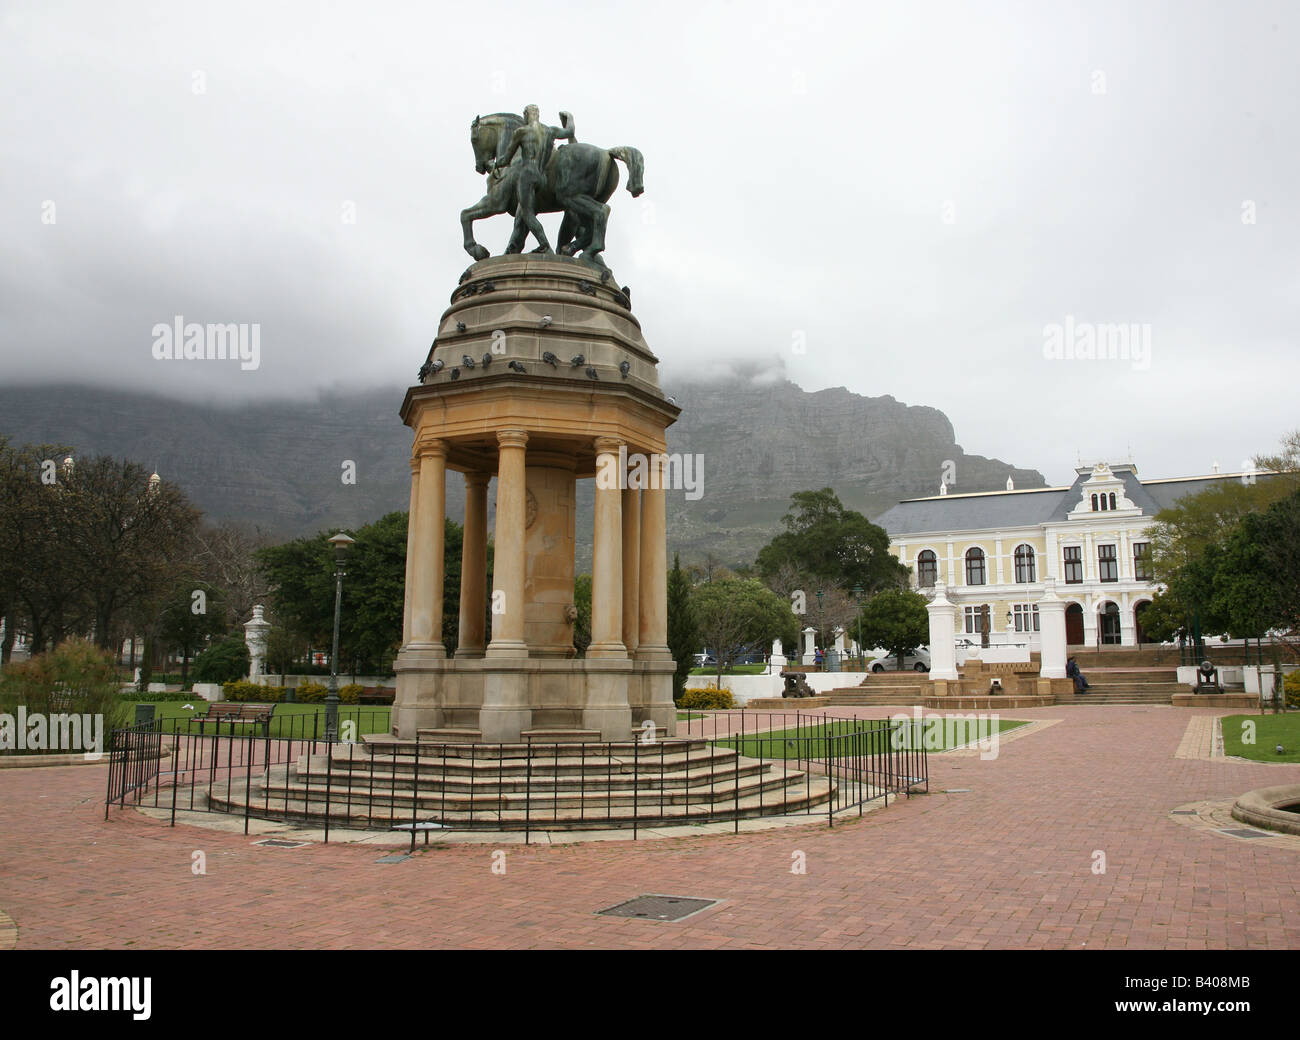 A statue of a horse and rider in the Company's gardens, Cape Town, South Africa - Stock Image